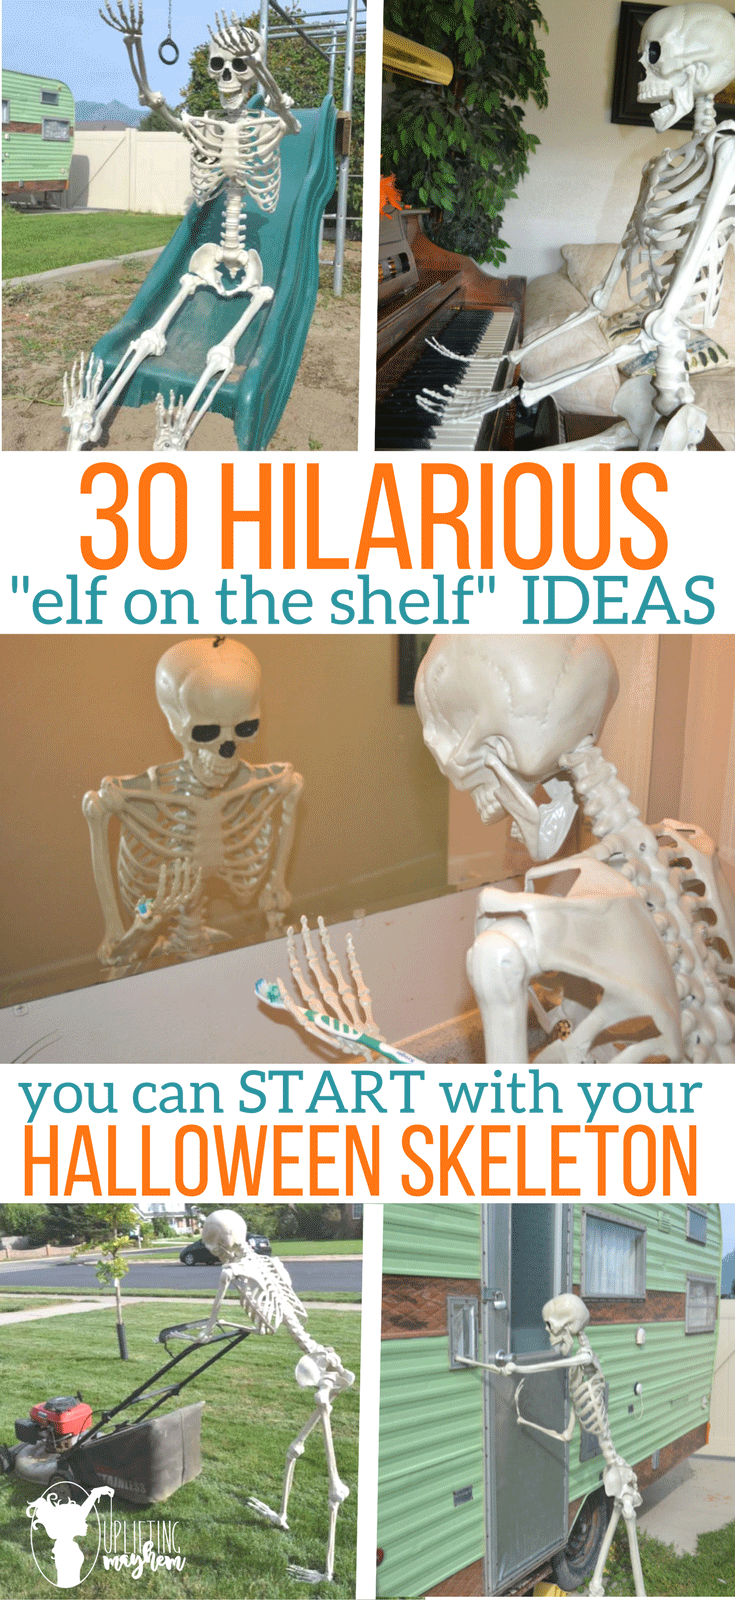 "30 Hilarious ""elf on the shelf"" IDEAS you can start with your Halloween Skeleton. Great addition to your Halloween decoration!"